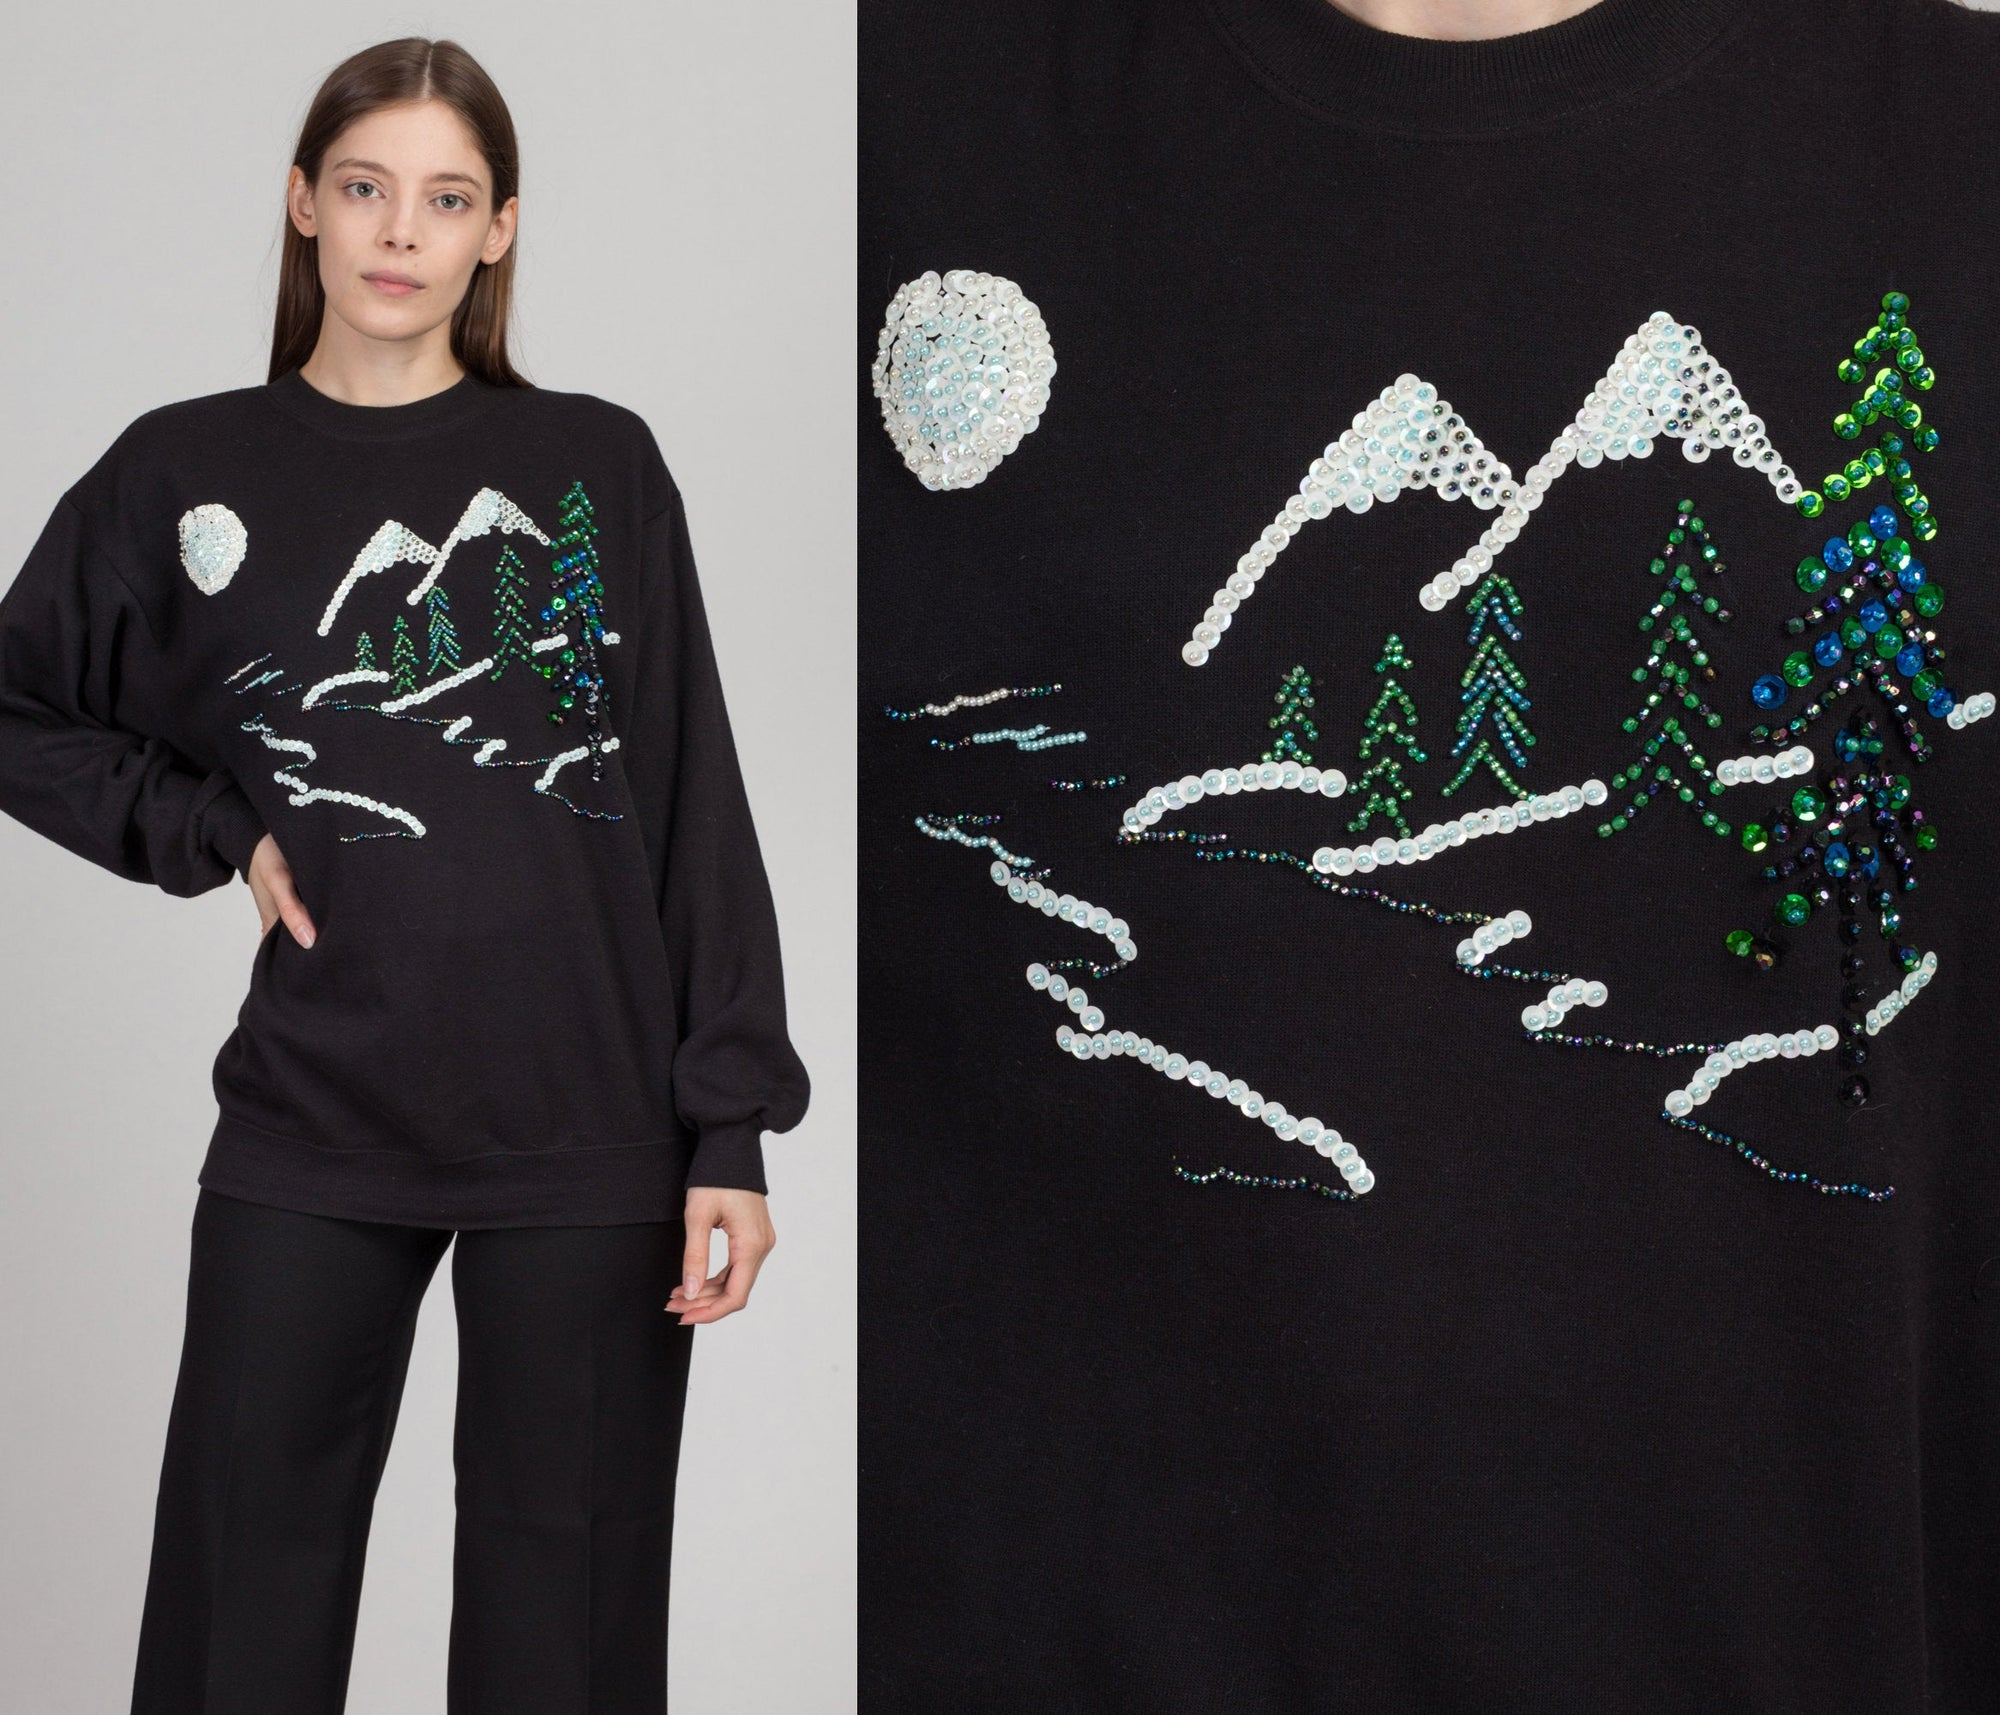 80s Black Winter Scene Sequin Sweatshirt - Men's Large, Women's XL | Vintage Mountain Snow Graphic Unisex Pullover